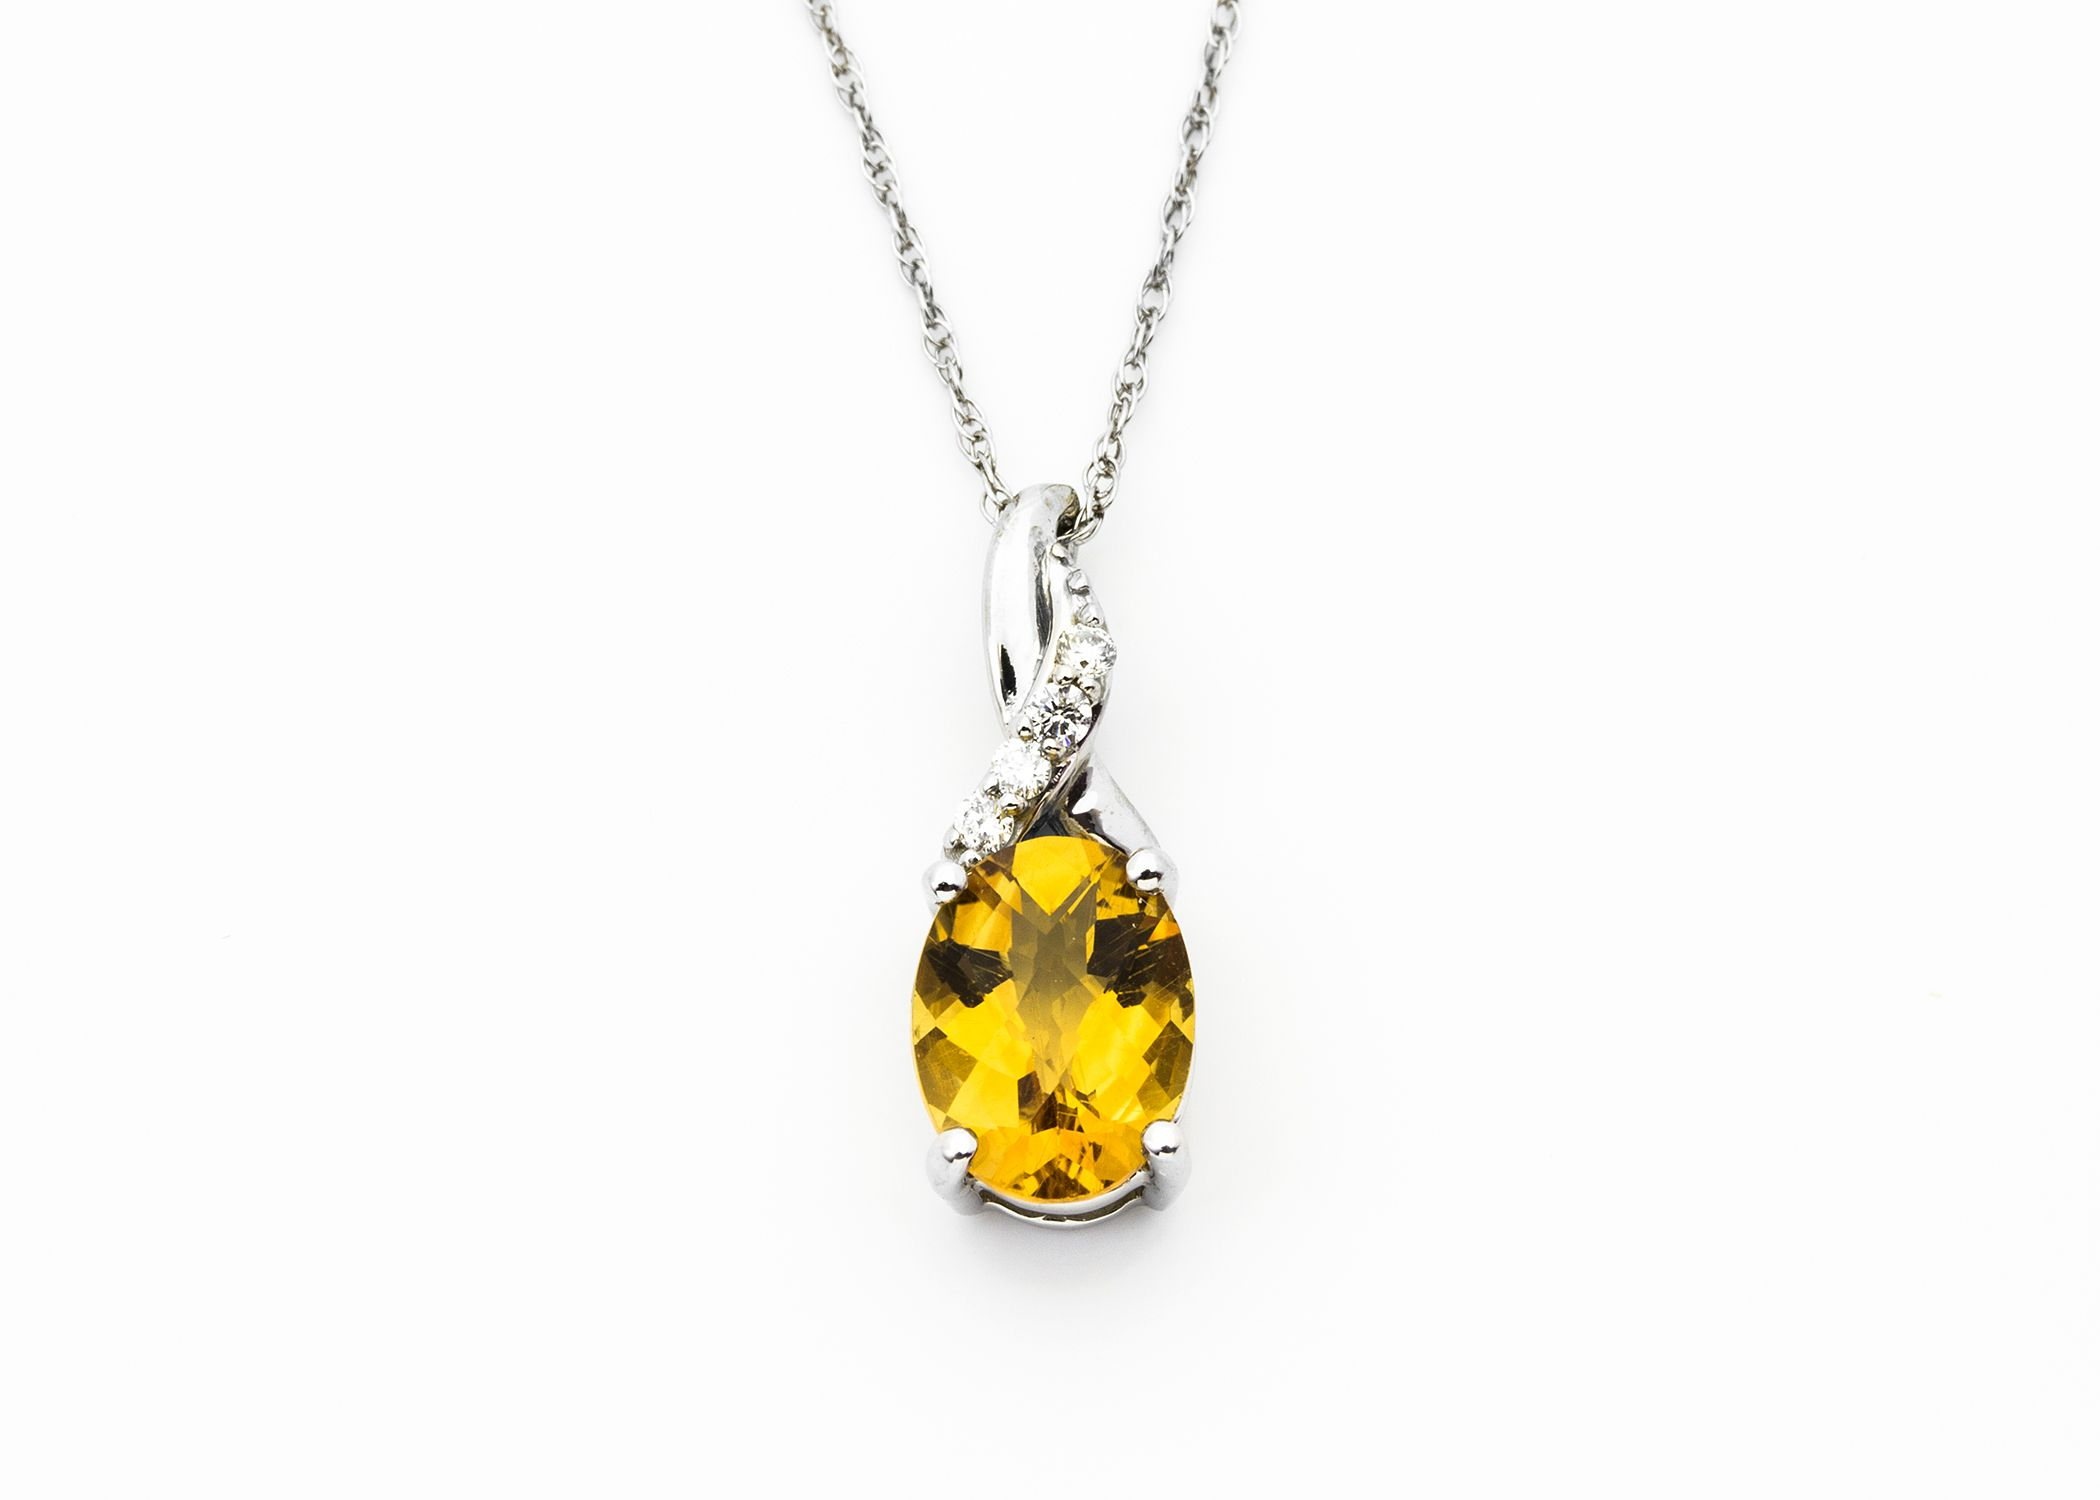 Citrine and Diamonds? A pop of color is a fun way to stand out. This pendant is set in 14K white gold and is new at The Gem Gallery! #montana #bozeman #pendant #citrine #sparkle #jewelry #gold #14K